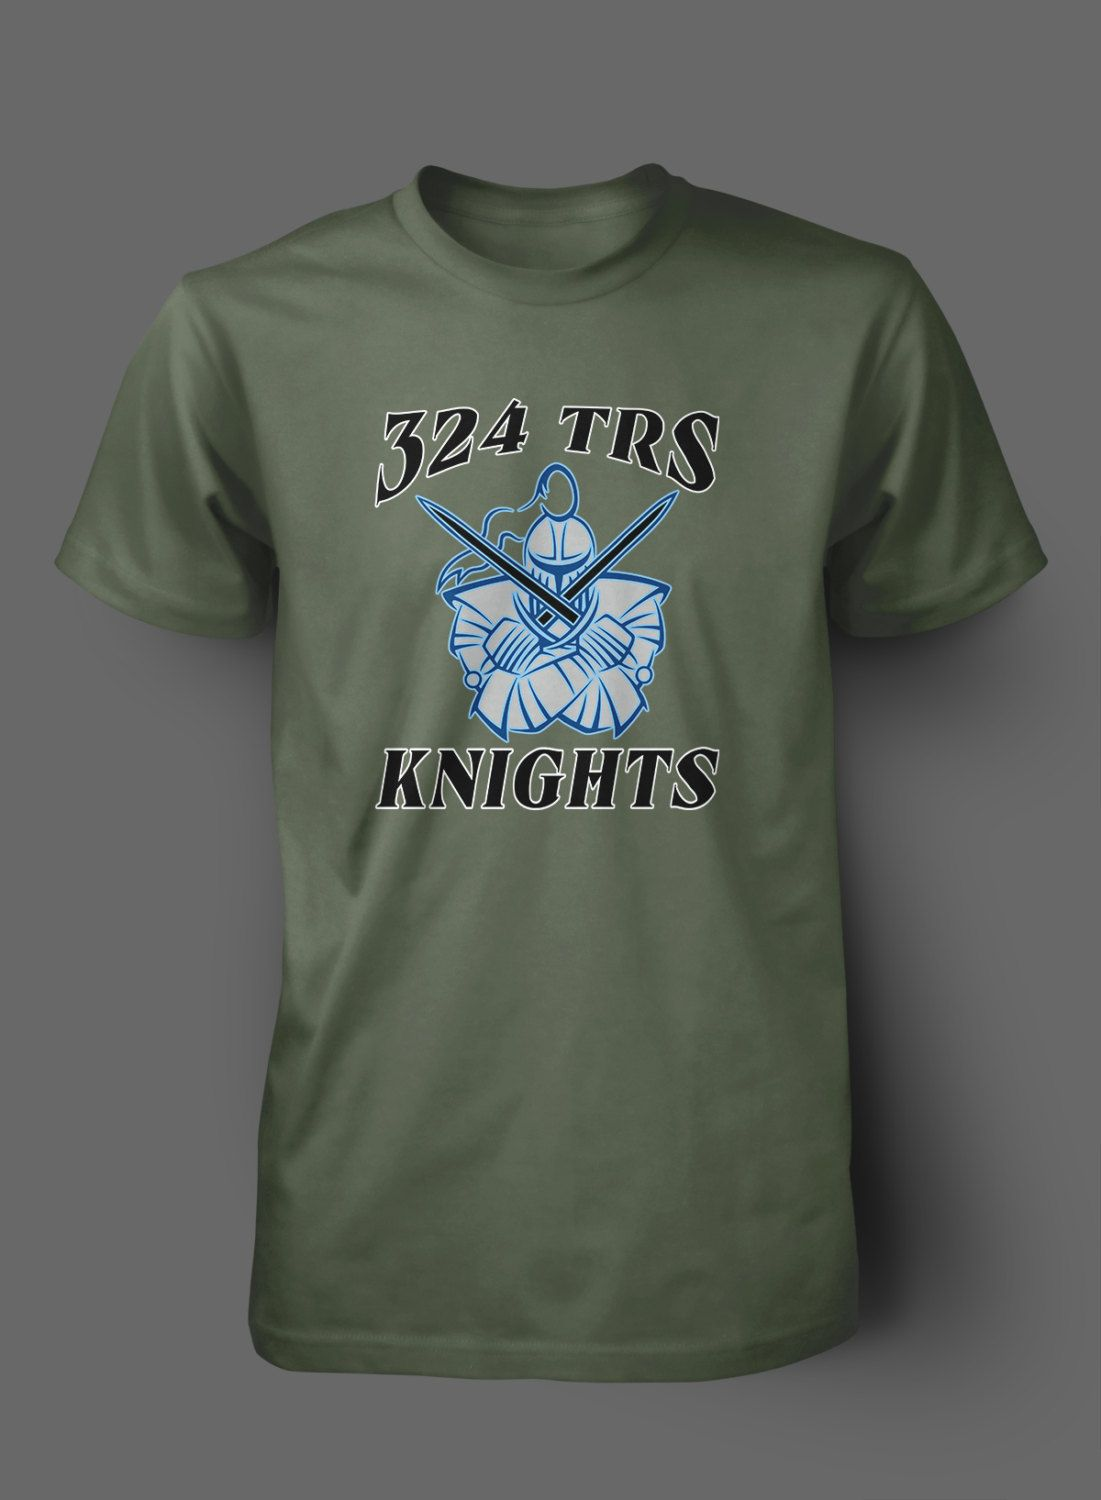 324 TRS Knights Squadron Shirts by WilliamsDigitalStore on